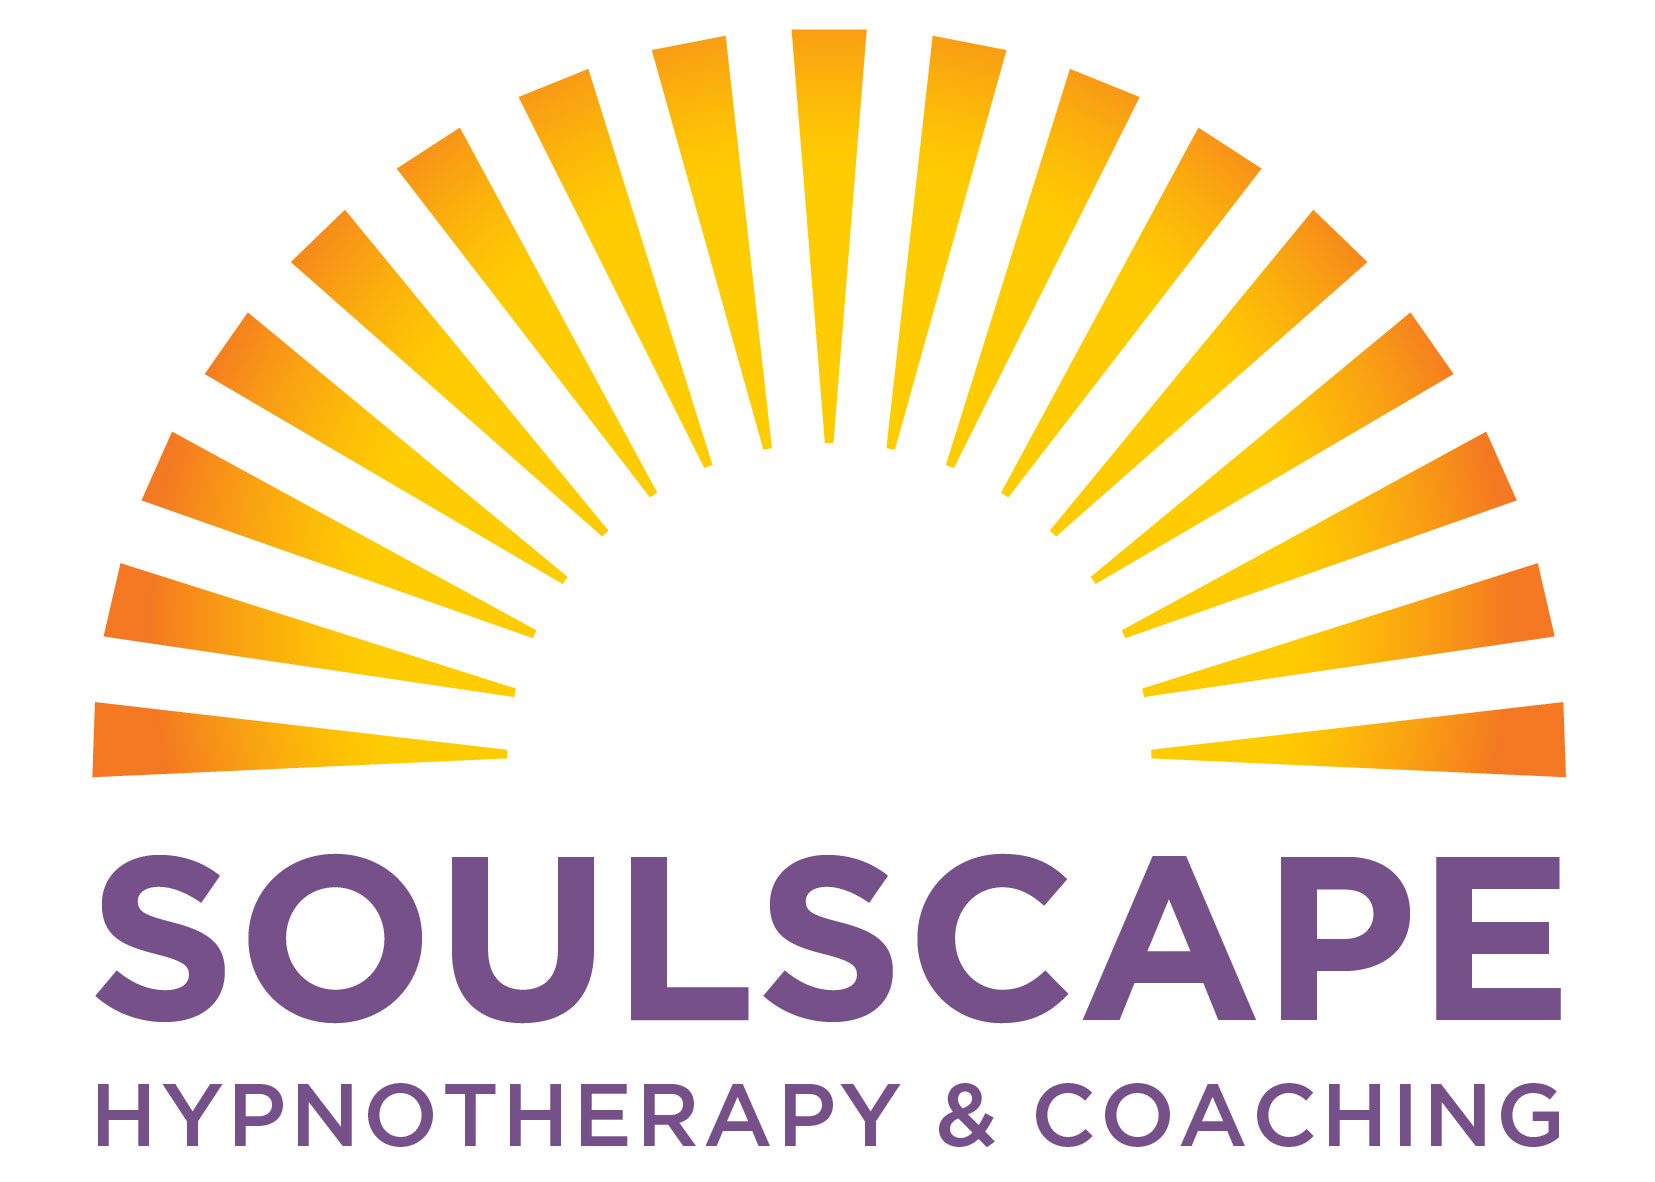 Soulscape Hypnotherapy & Coaching